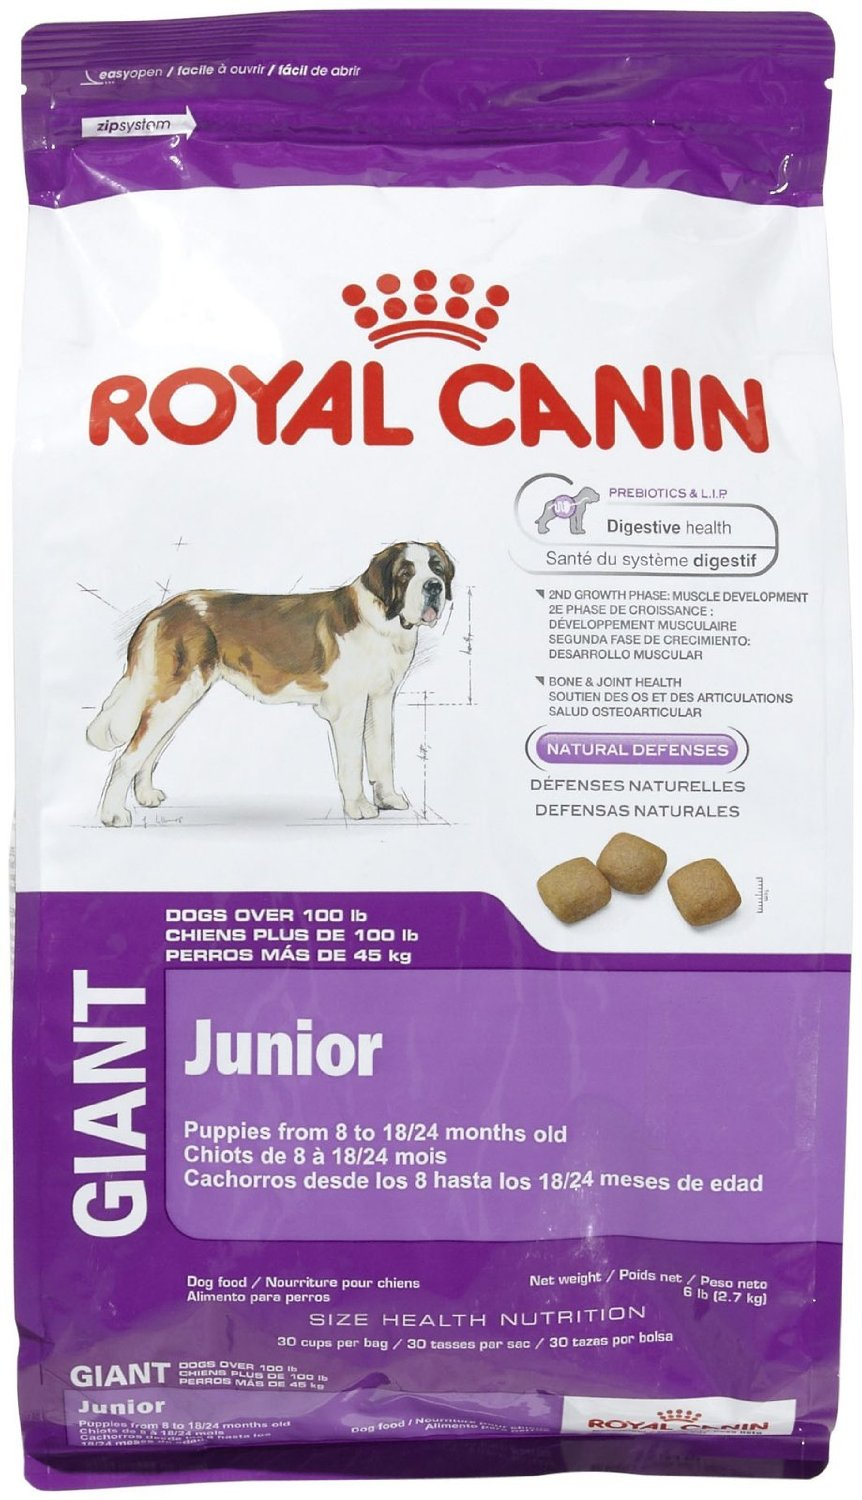 Royal Canin Junior Dog Food